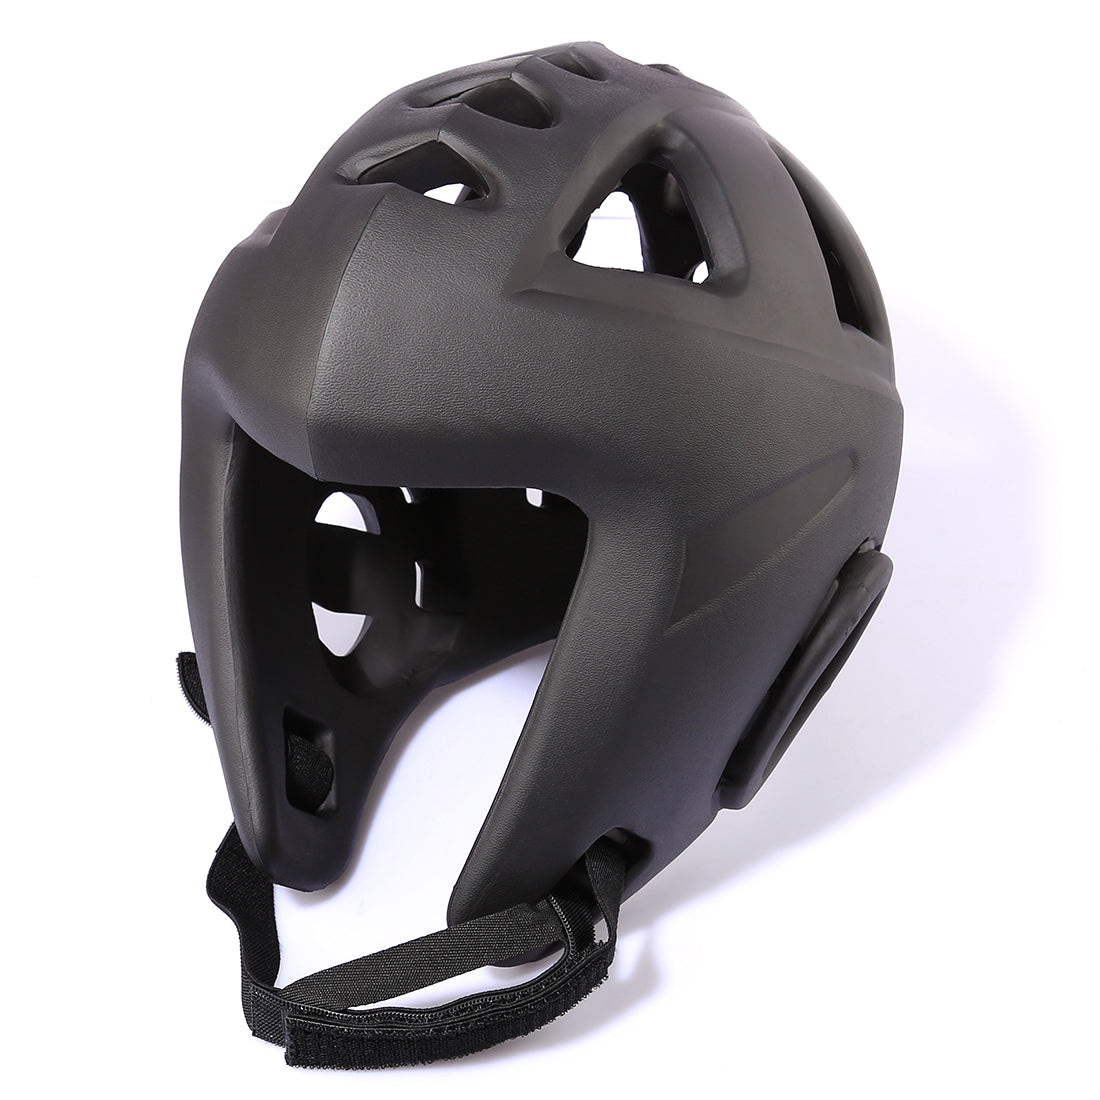 New Professional Fitness Durable Safety Protective Helmet Sports Safety for Boxing Head Protection ---Size M